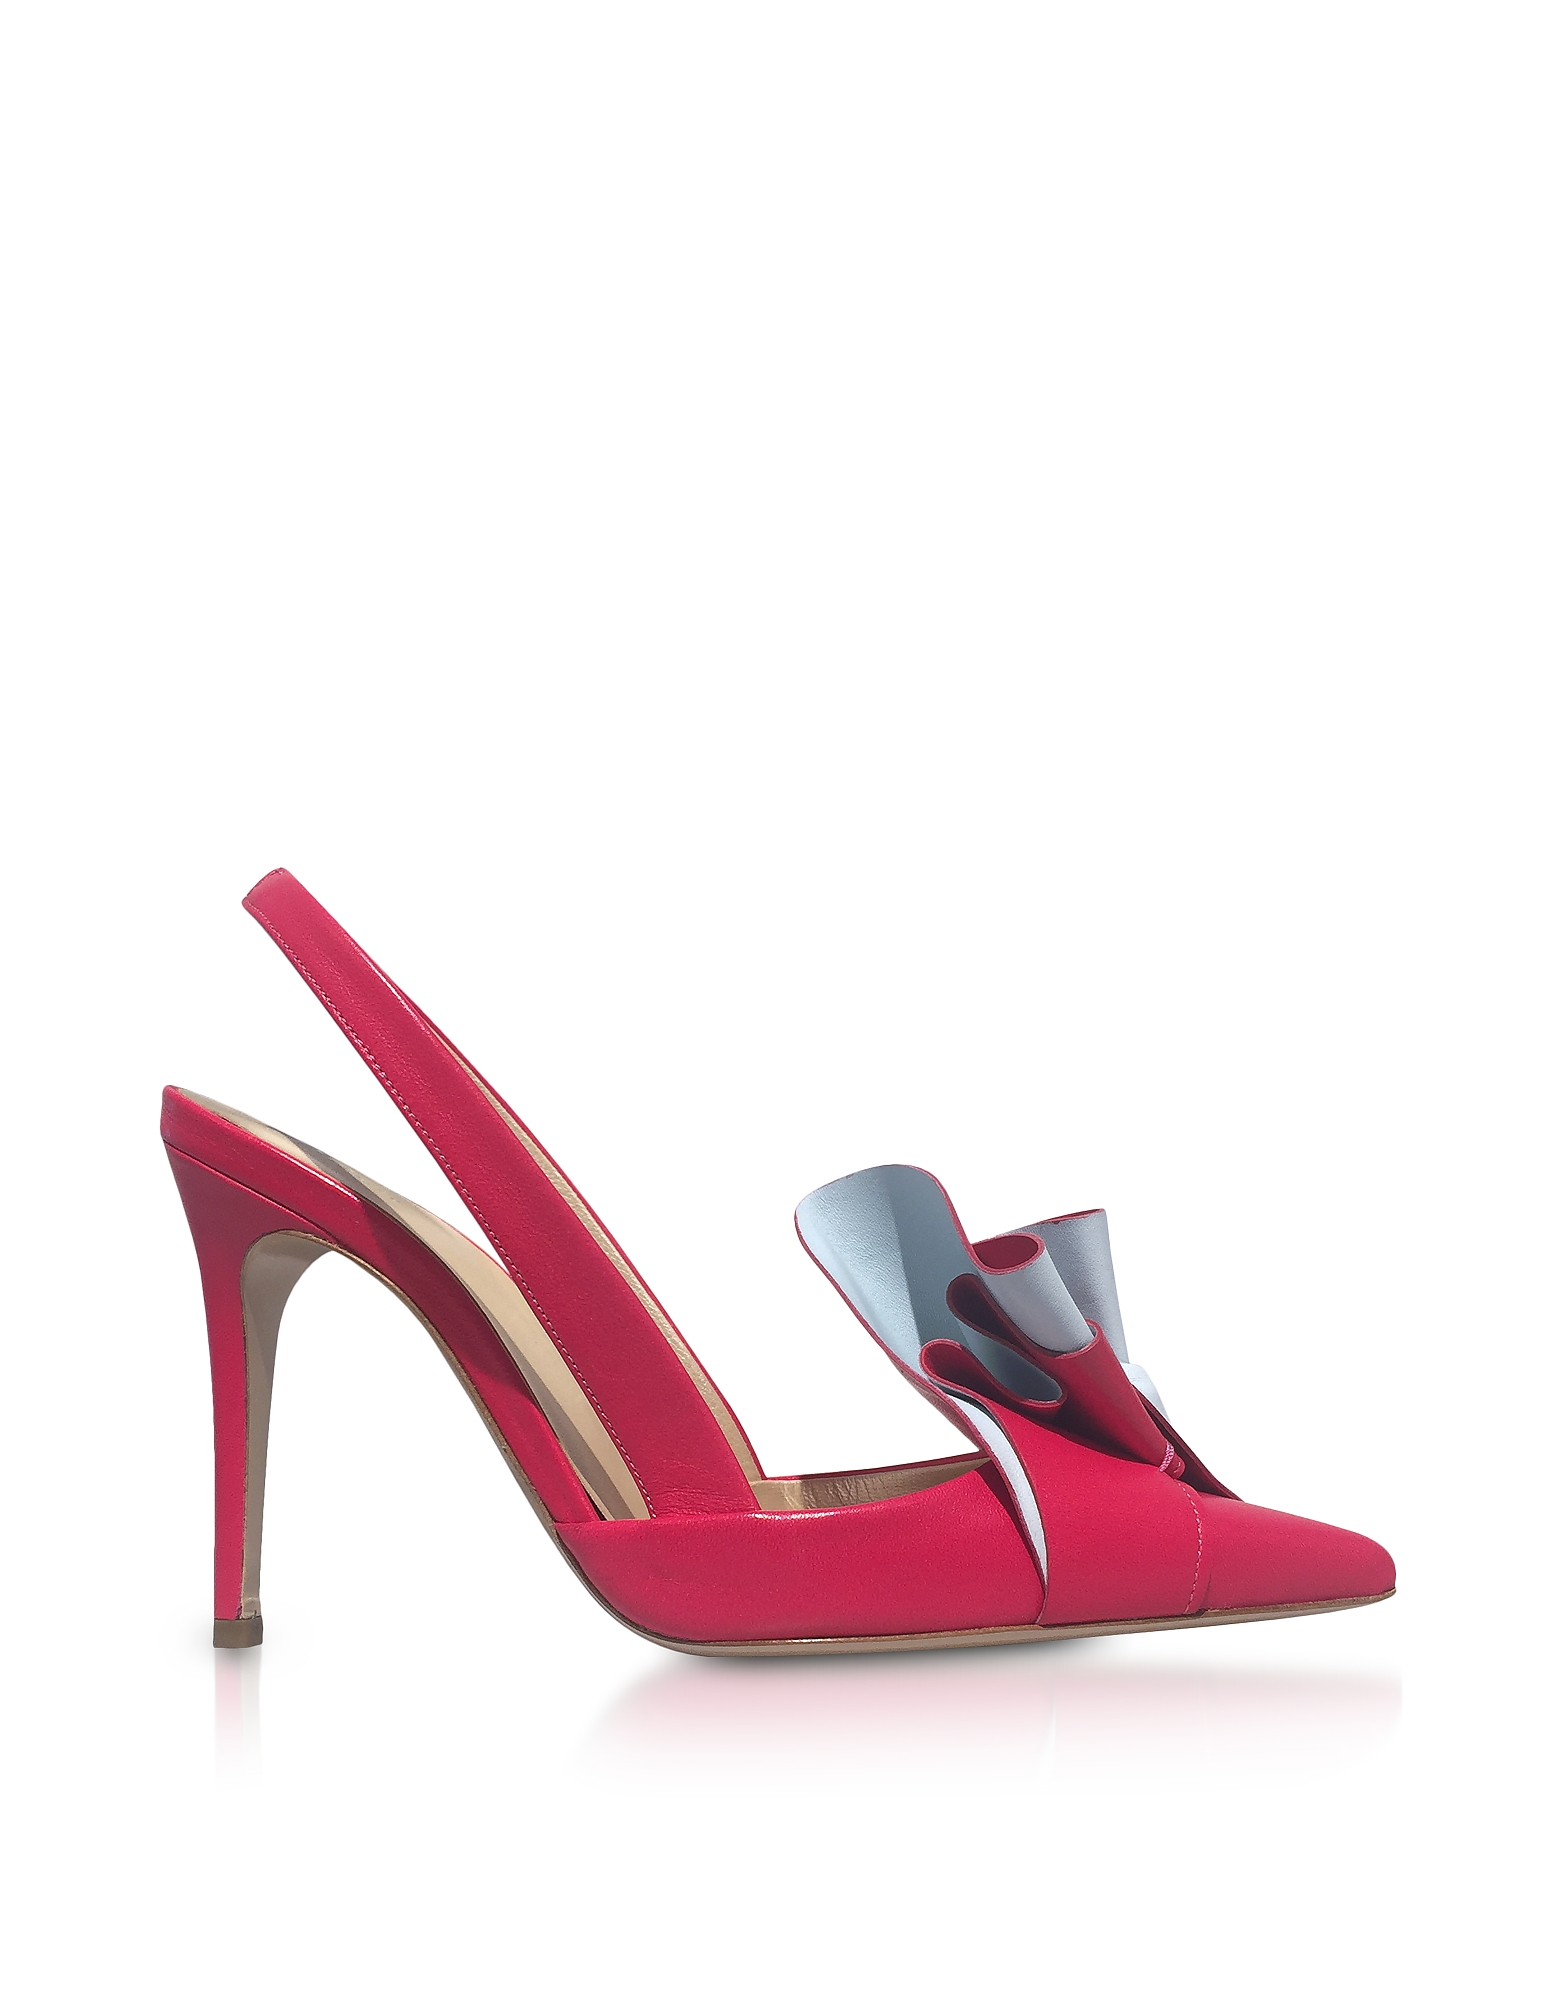 Delpozo Shoes, Two-Tone Leather Ruffle Slingback Pumps